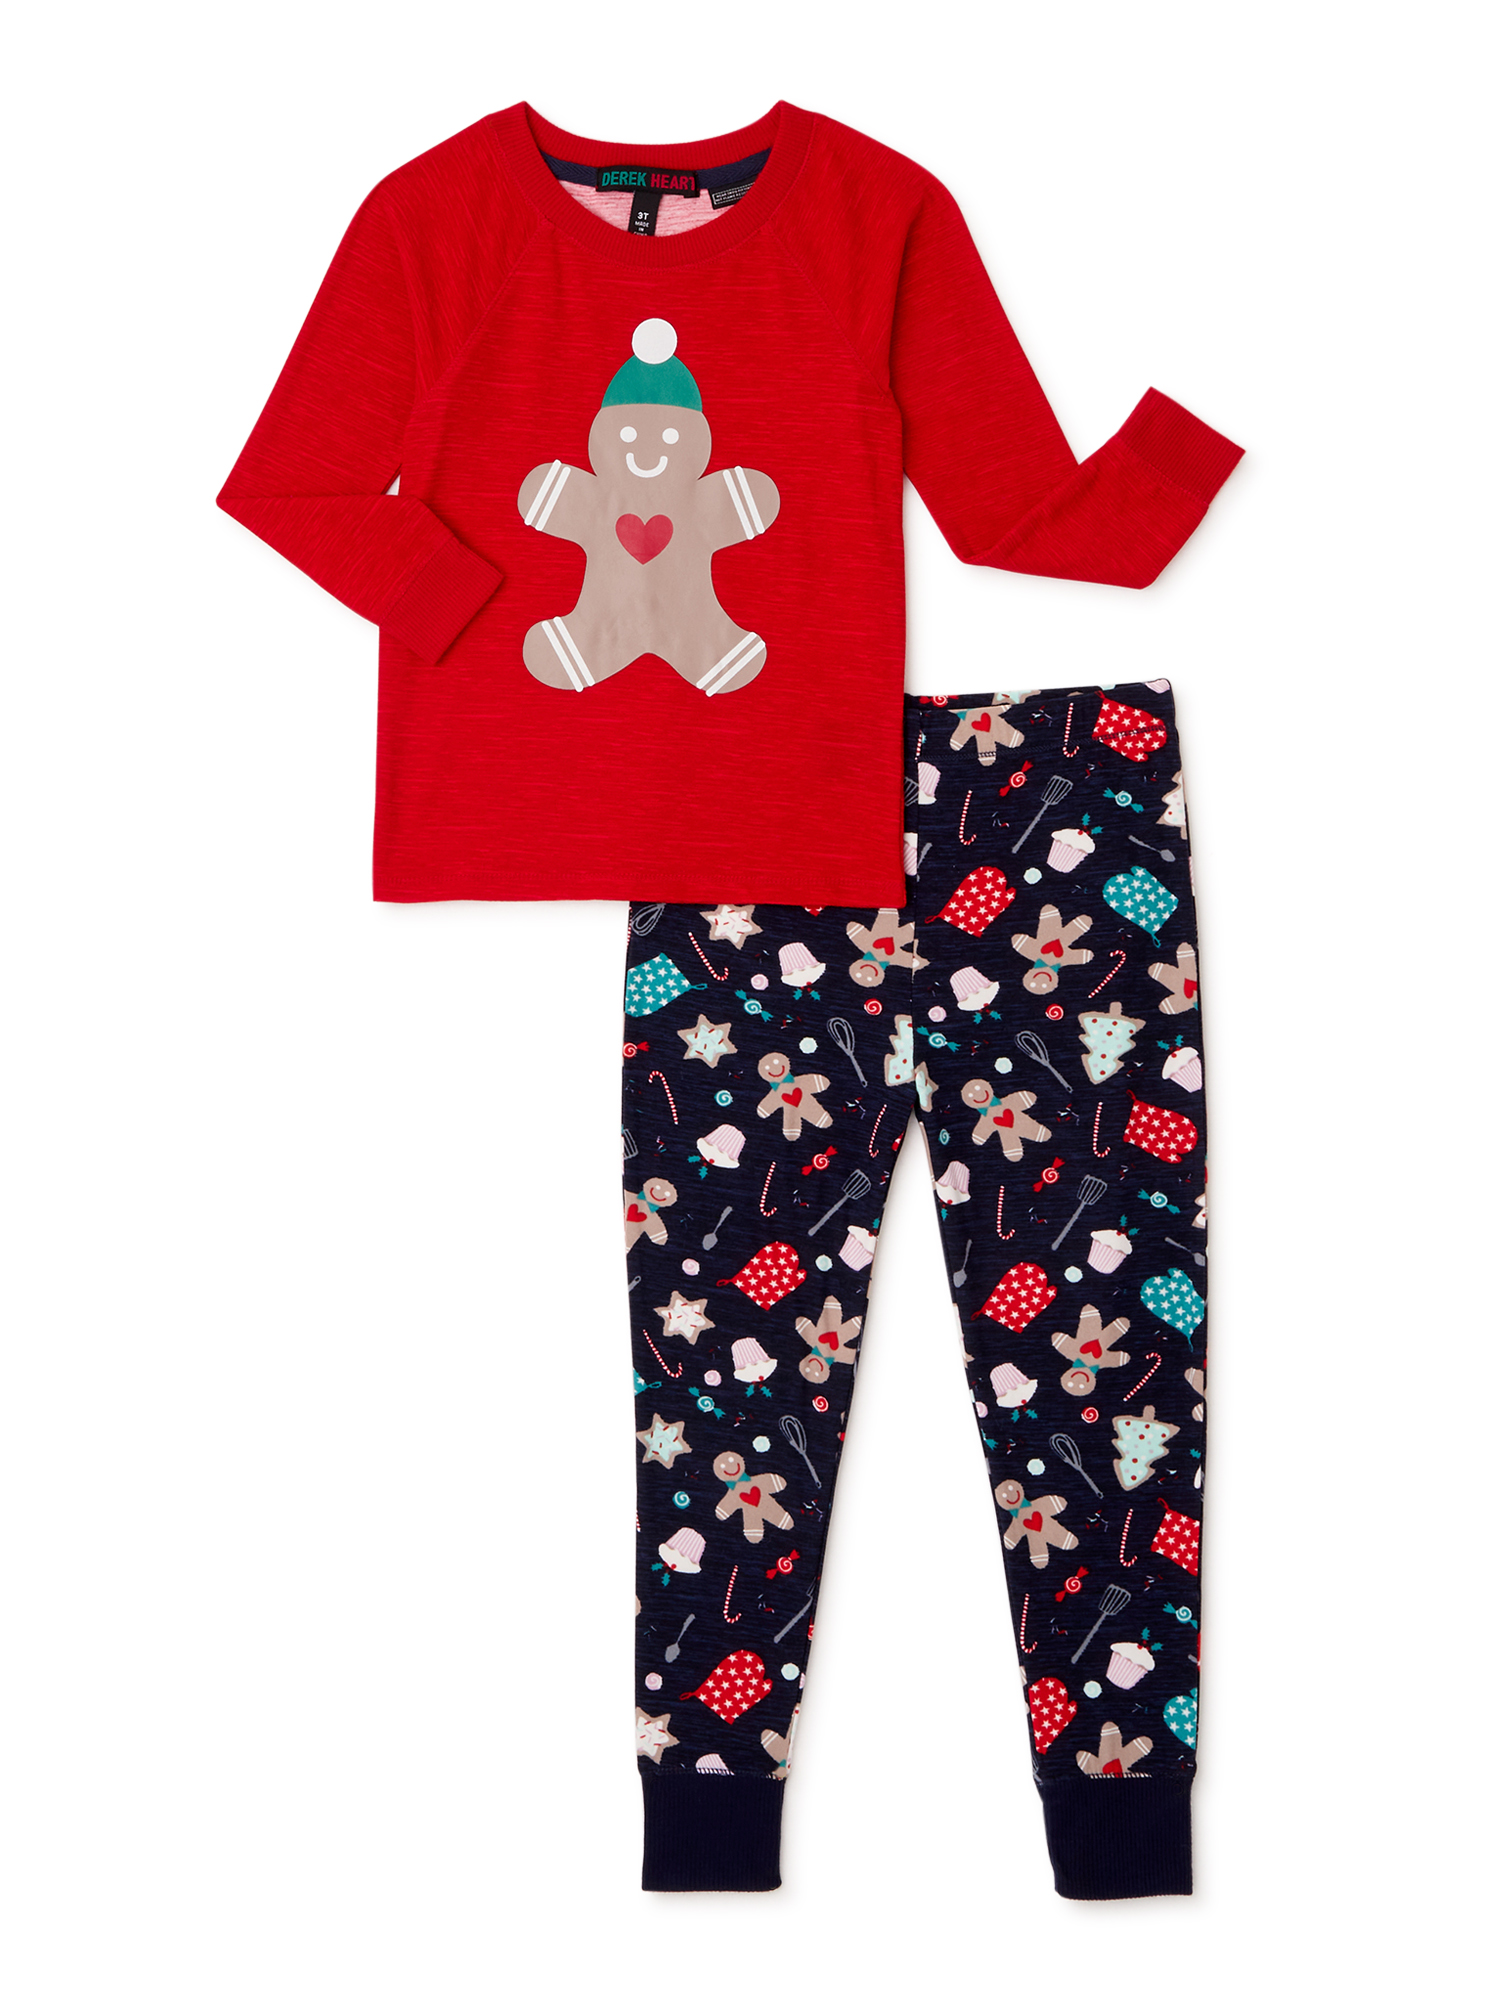 Baby Toddler Boys Girls Matching Christmas Pjs 2-Piece Style Pajama Set T-Shirt Pants Sleepwear Sets